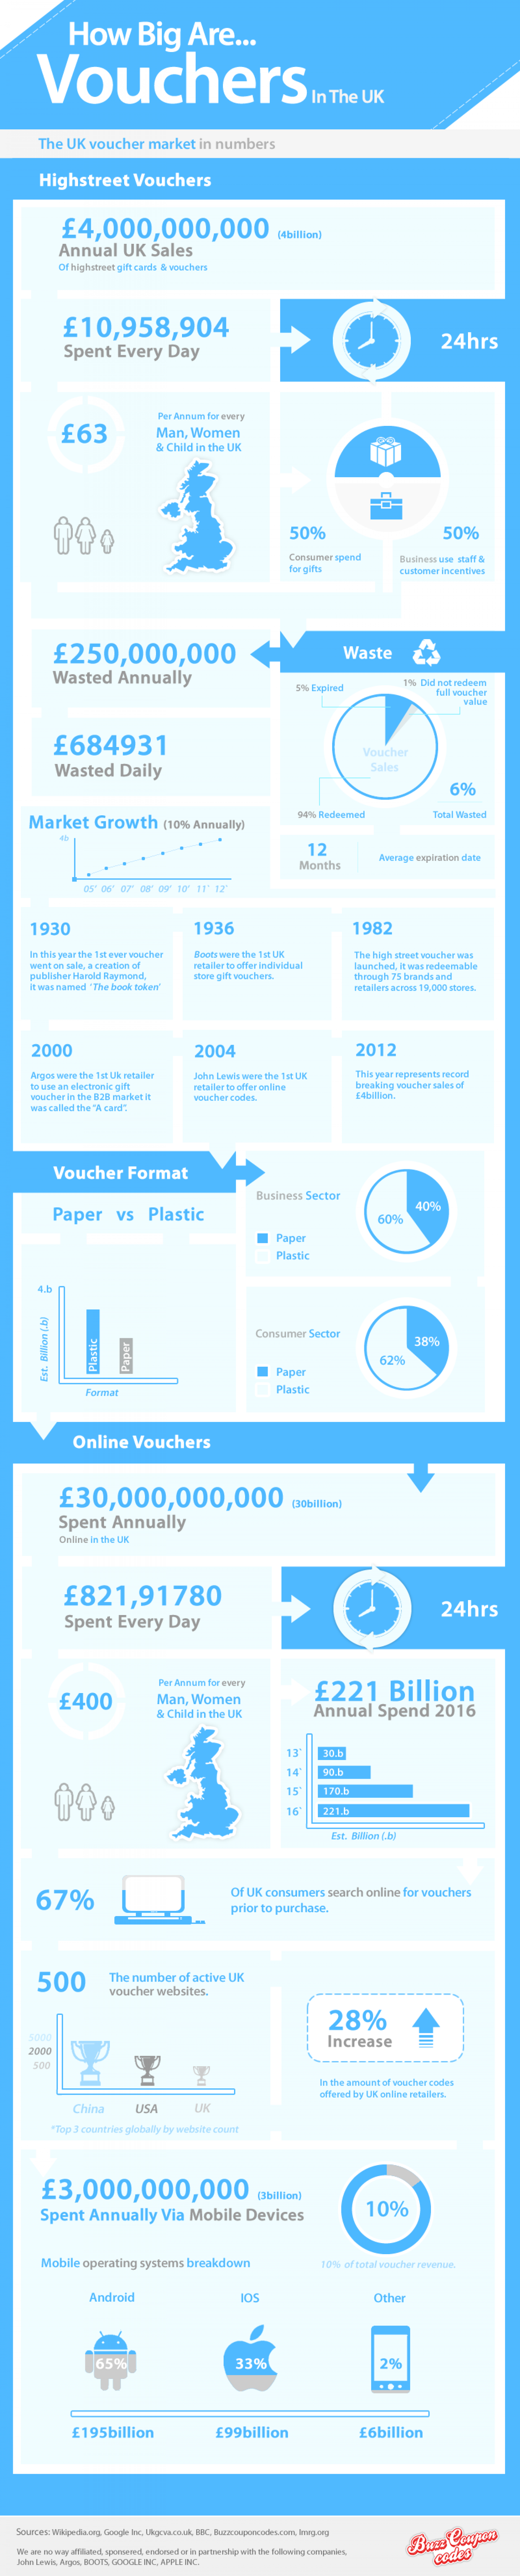 How Big Are Vouchers In The UK Infographic